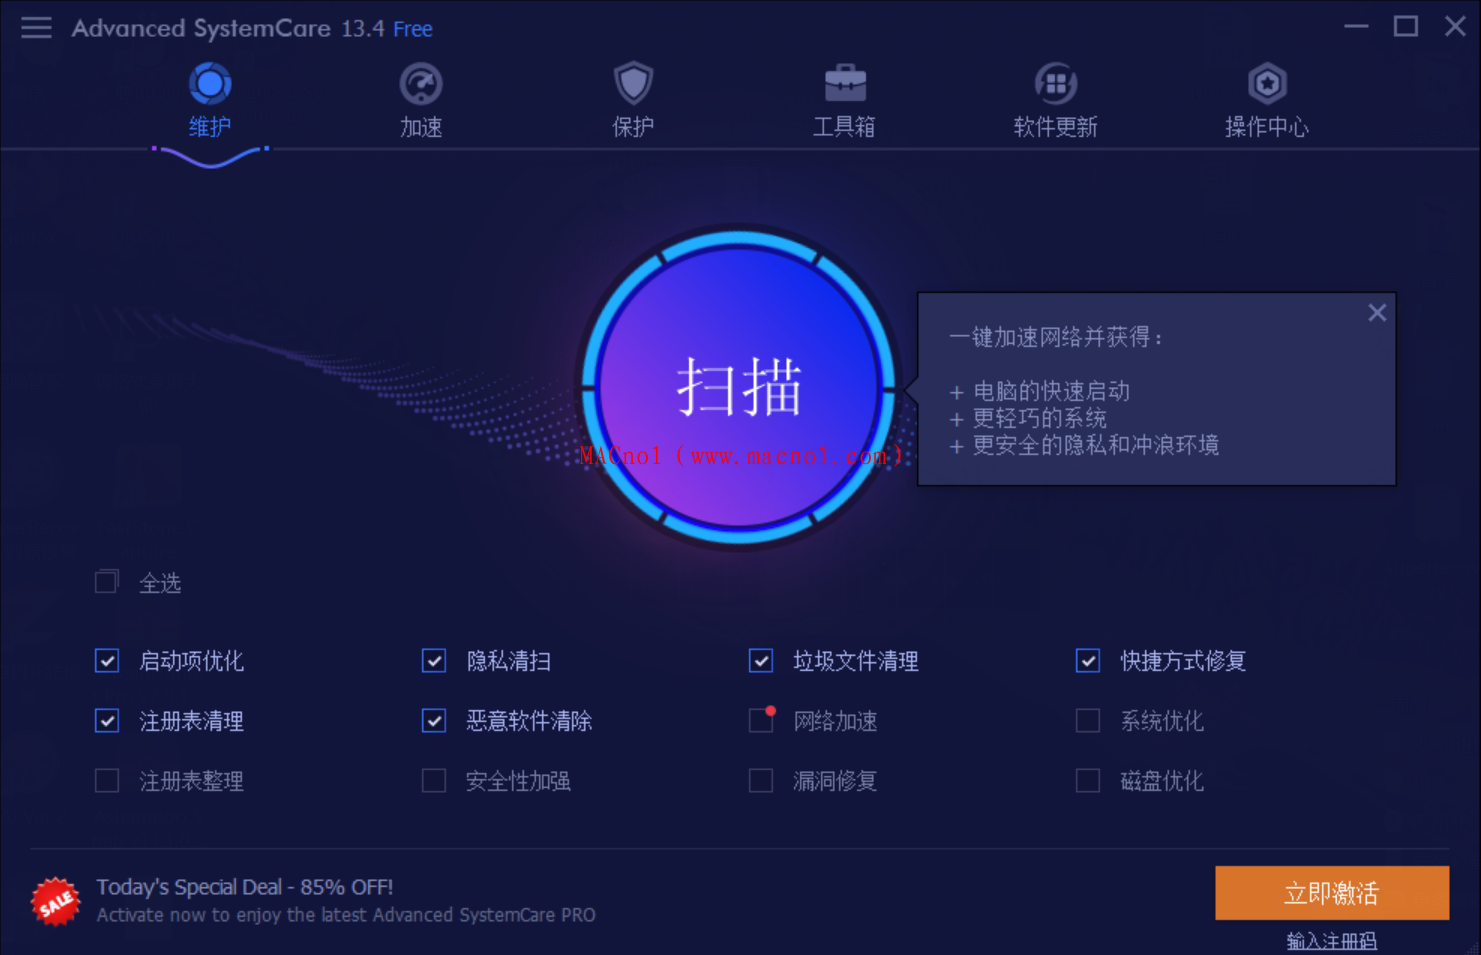 系统优化软件 Advanced SystemCare 13.4.0 中文破解版(附破解补丁)